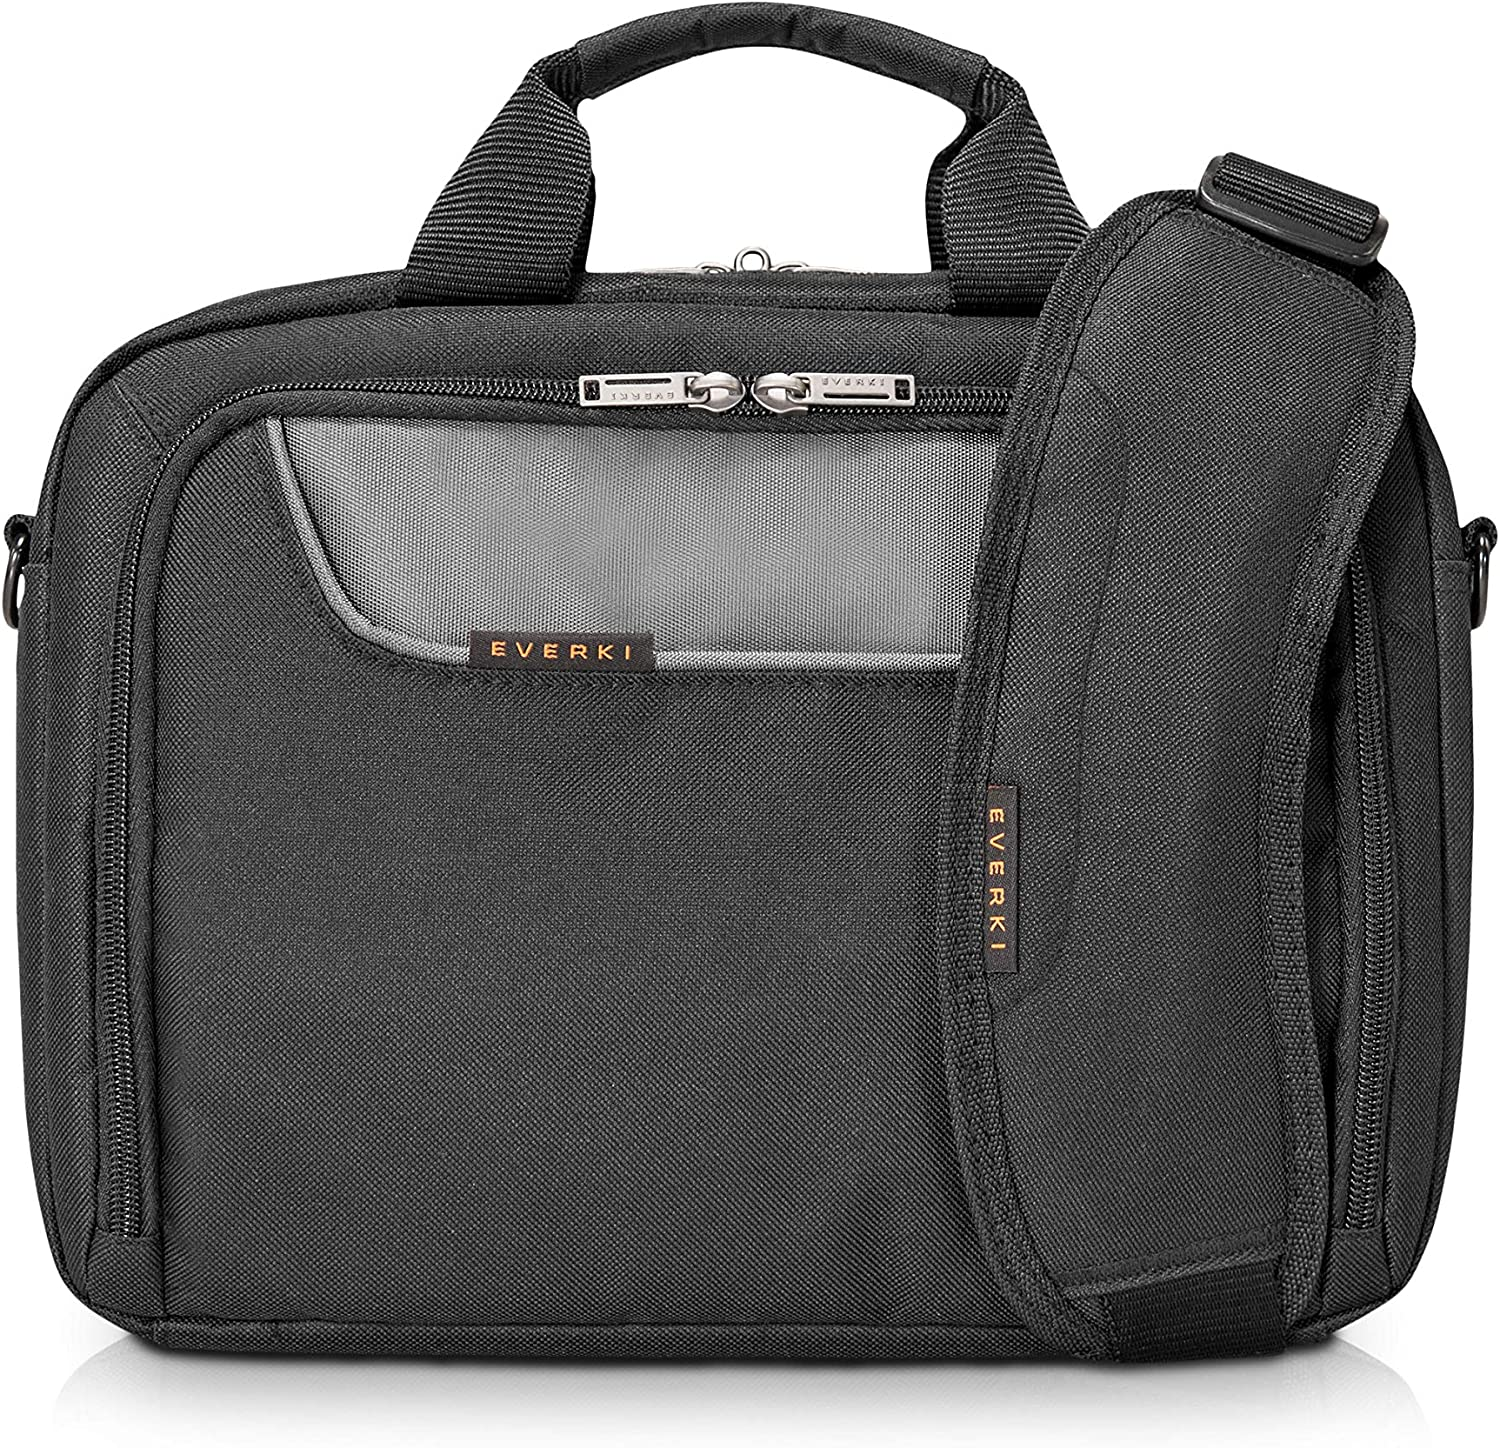 Koruna Laptop Bag for iPad Air and Netbook Fits 7 to 10-Inch Water Resistant Laptop Tablets